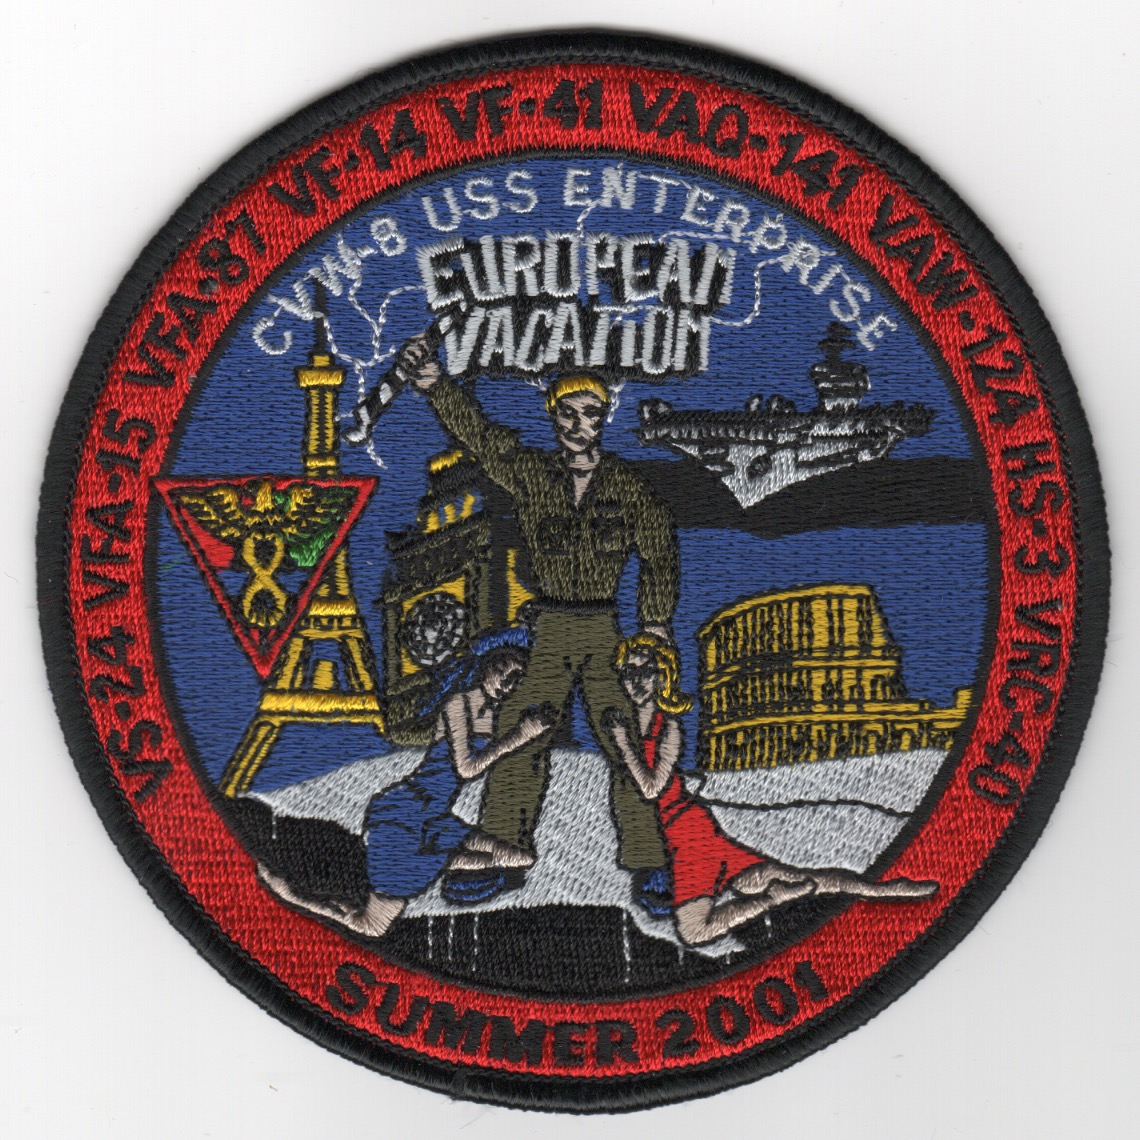 438) CVN-65/CVW-8 2001 'Euro Vac' Cruise Patch